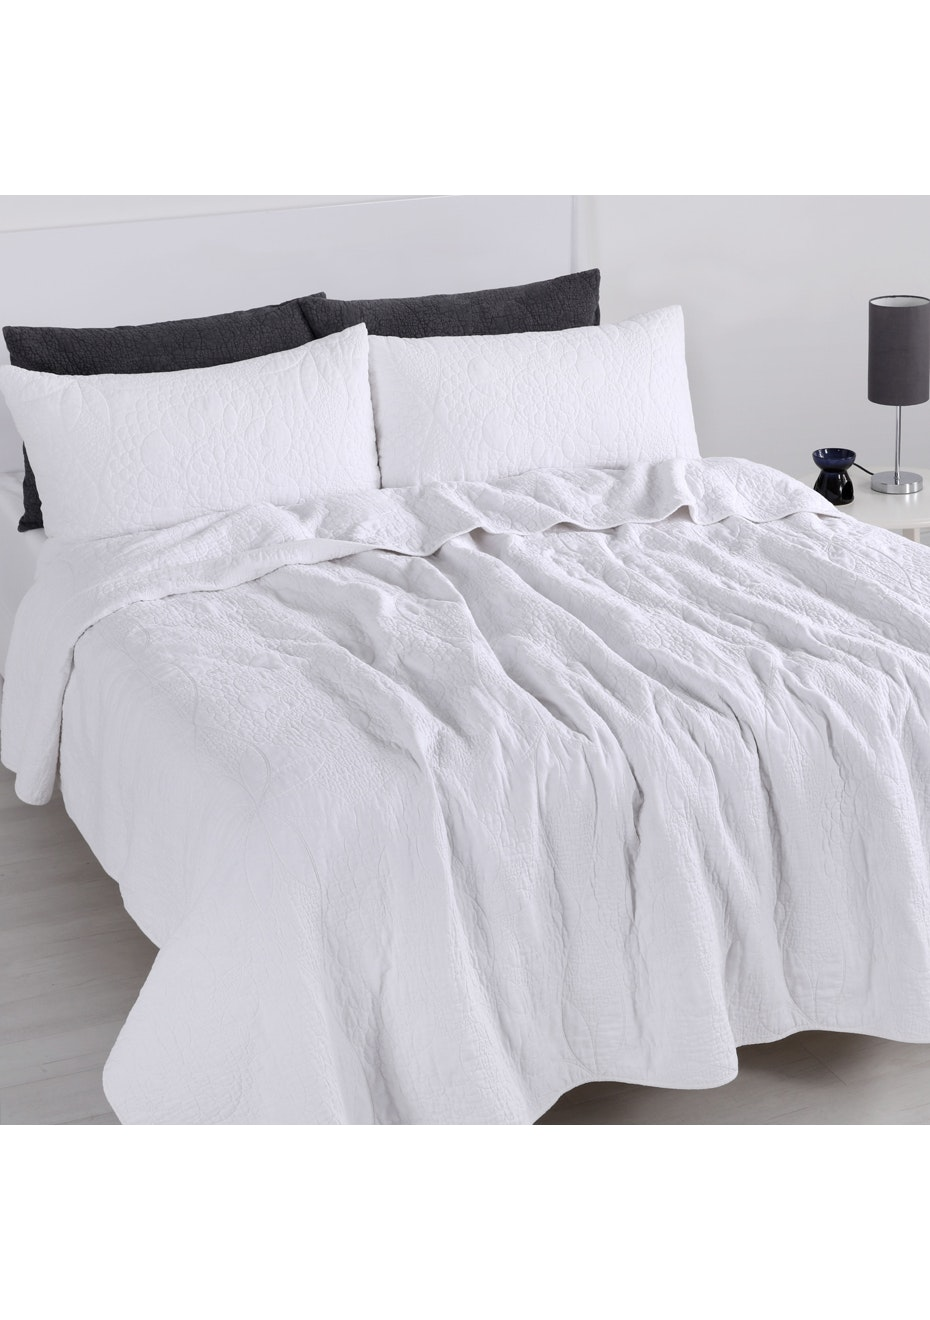 Queen Bed White Linen Cotton Flower Coverlet